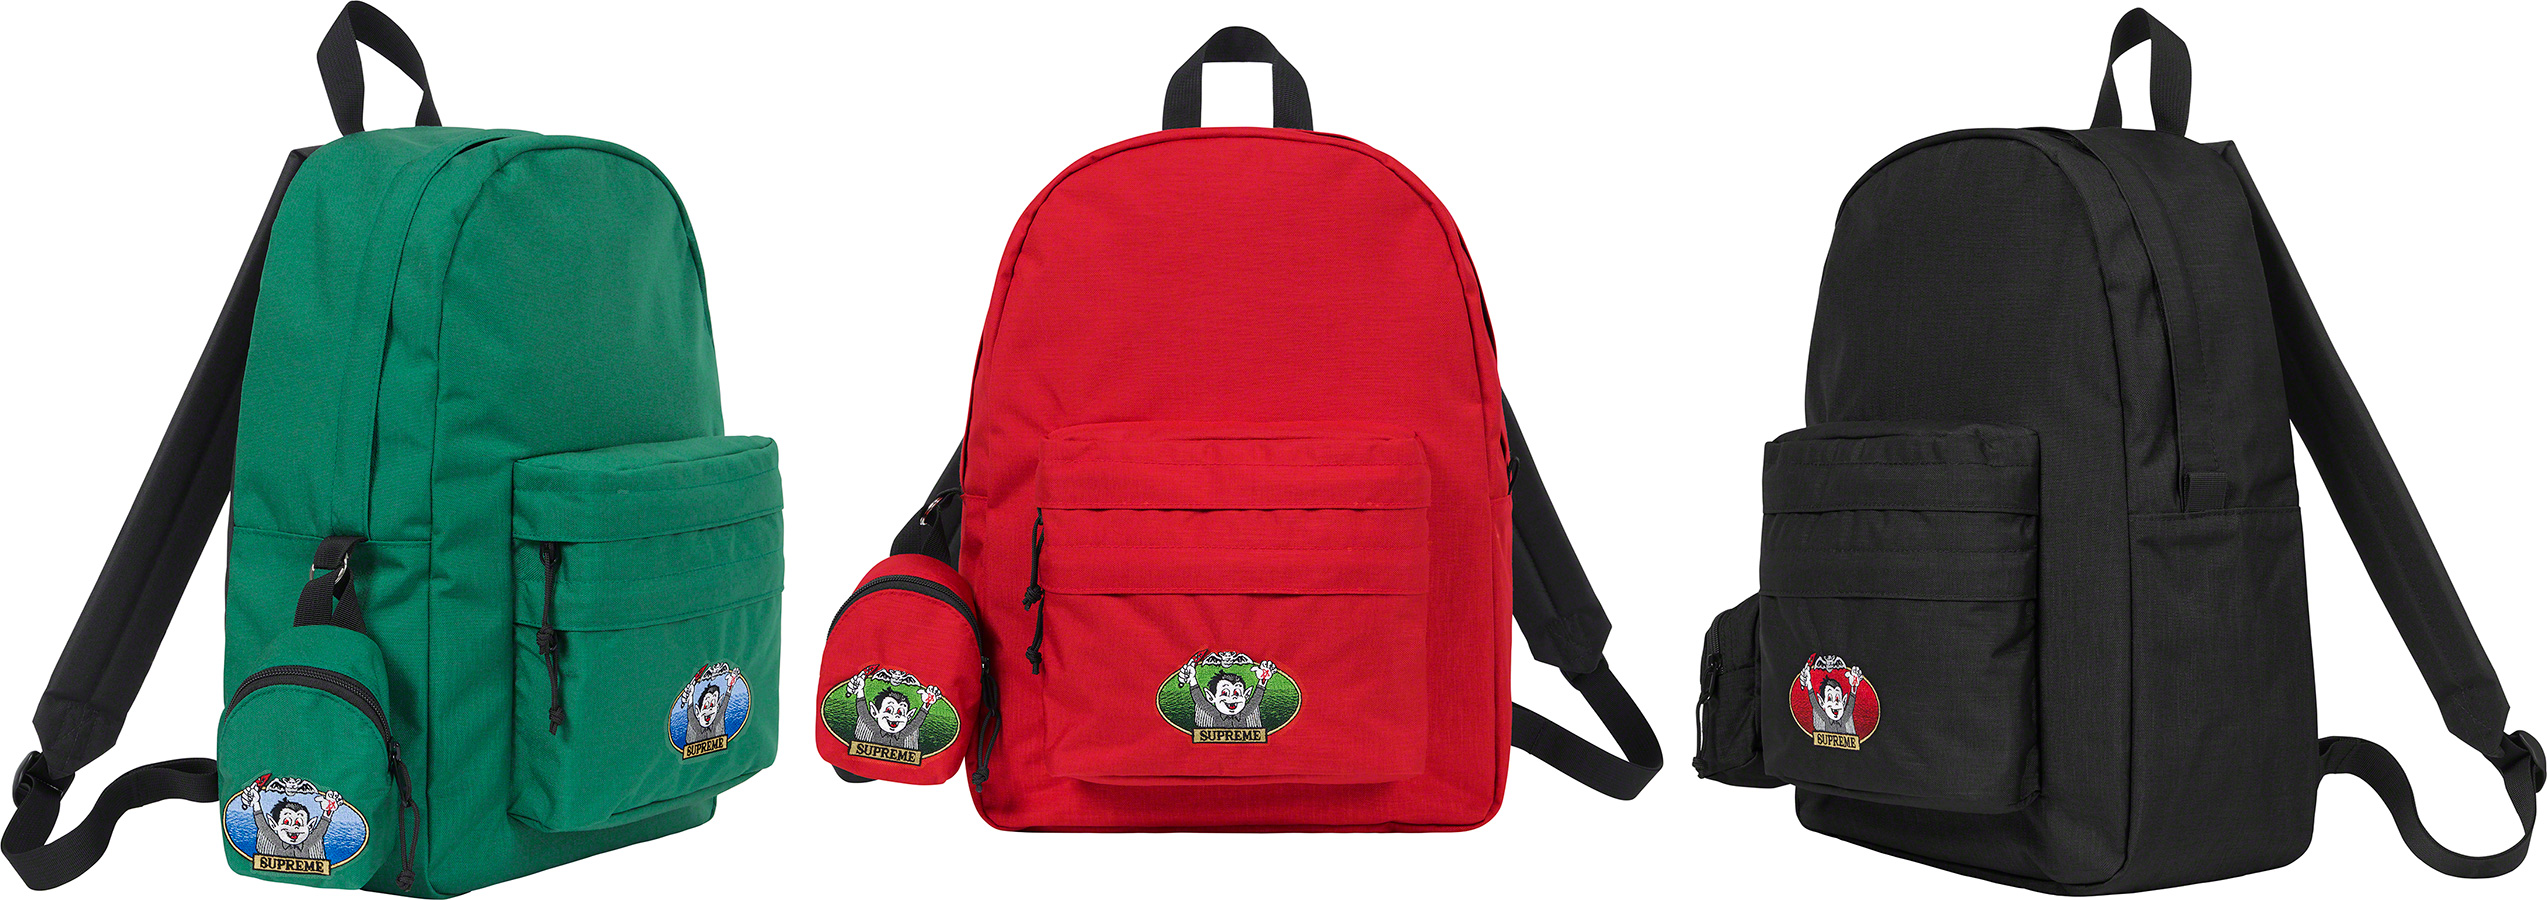 supreme-21ss-spring-summer-vampire-boy-backpack